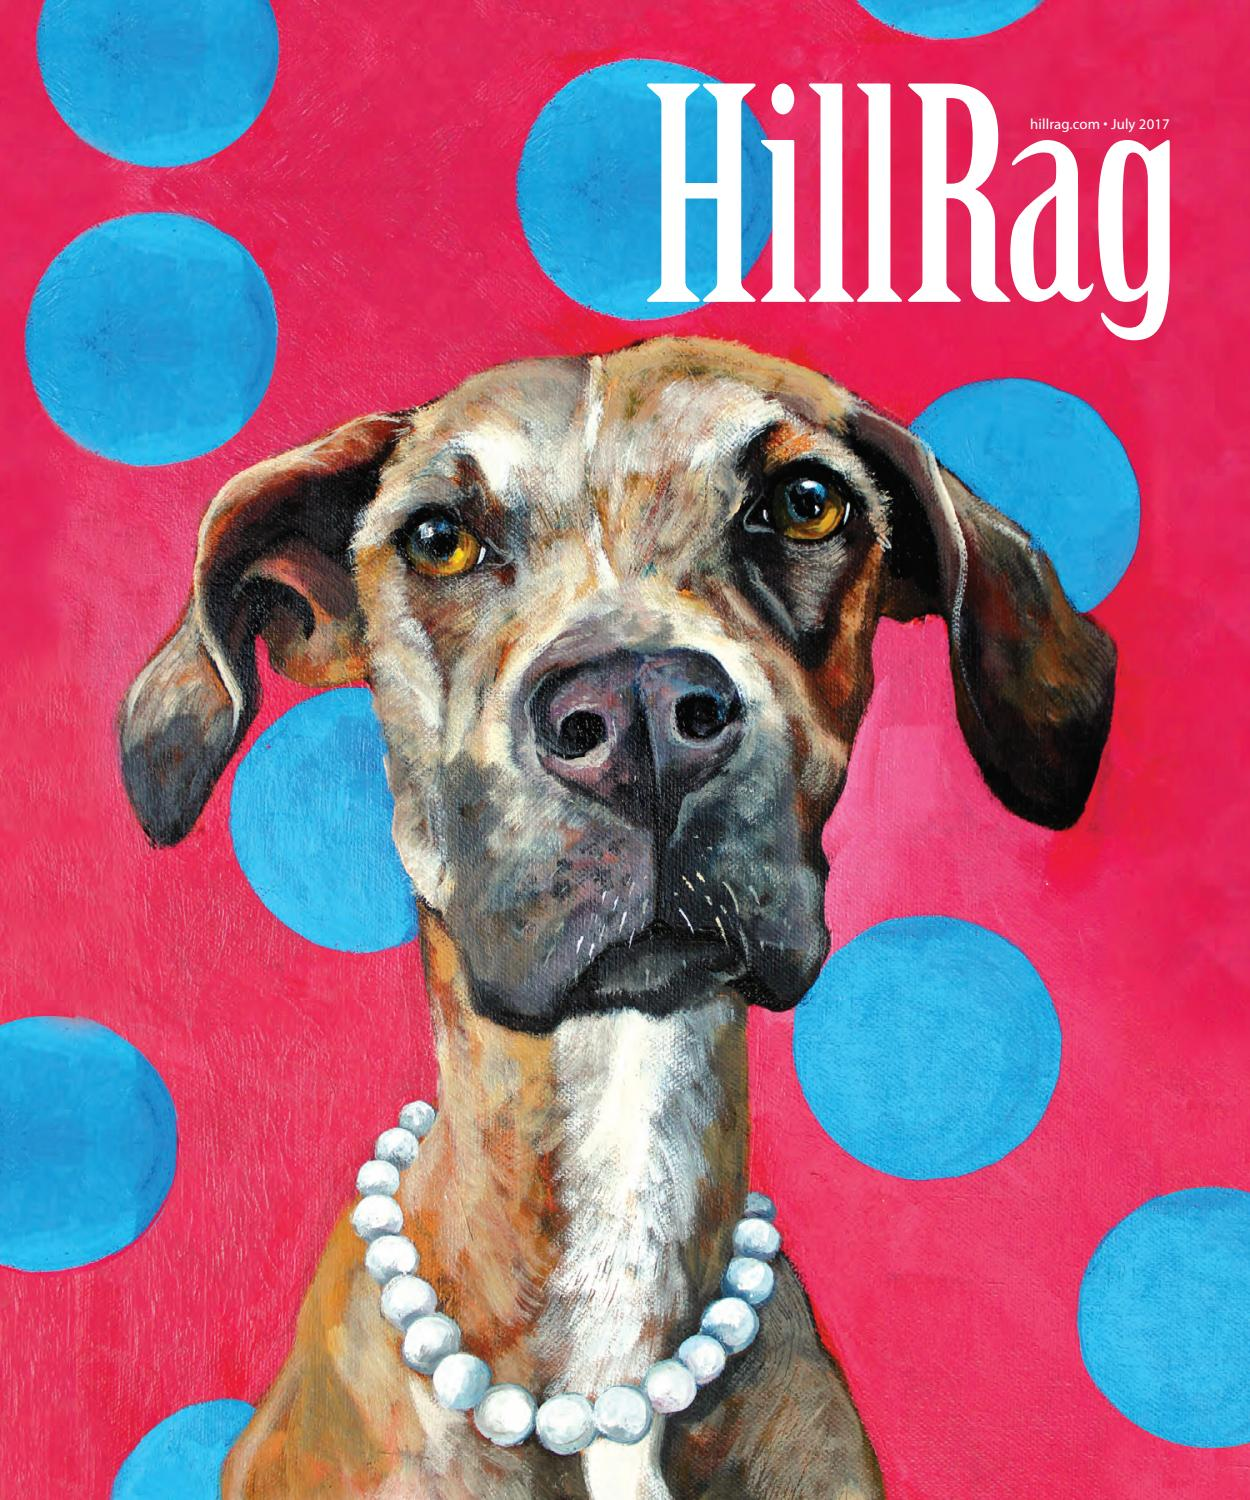 Hill Rag Magazine July 2017 By Capital Community News Issuu Penfed Wiring Instructions